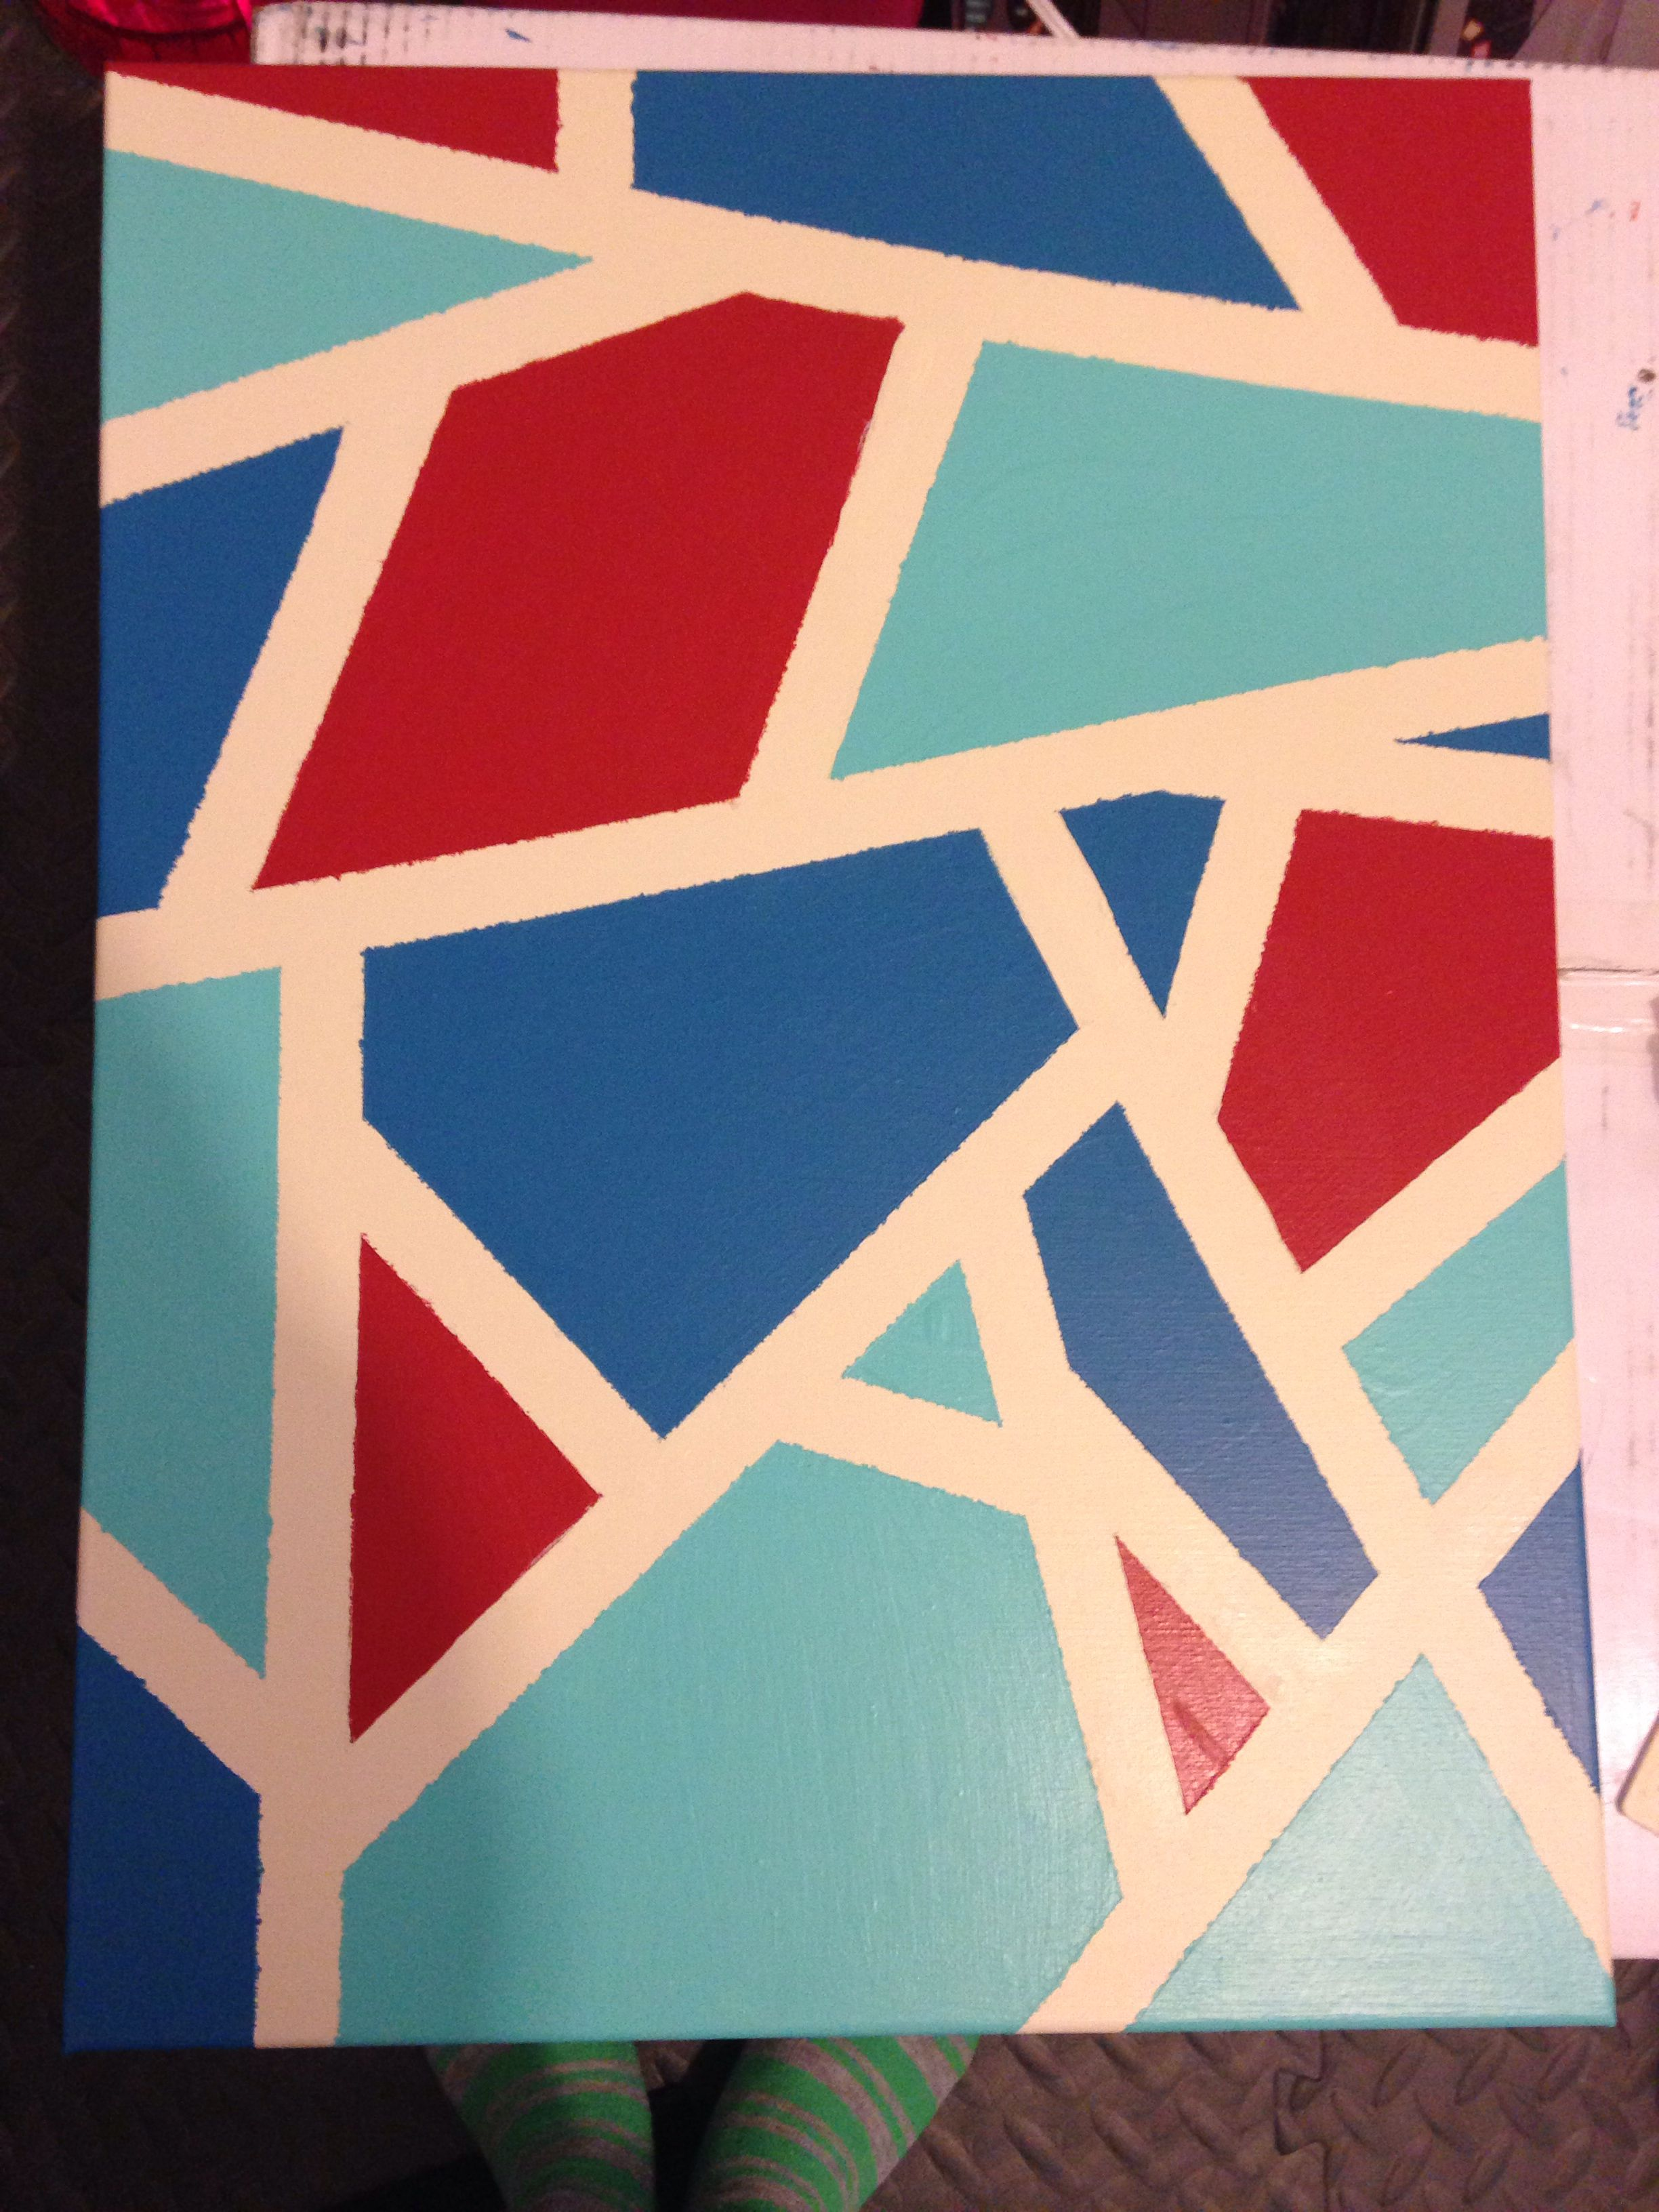 Abstract Diy Canvas Art Paint Solid Then Tape Designs With